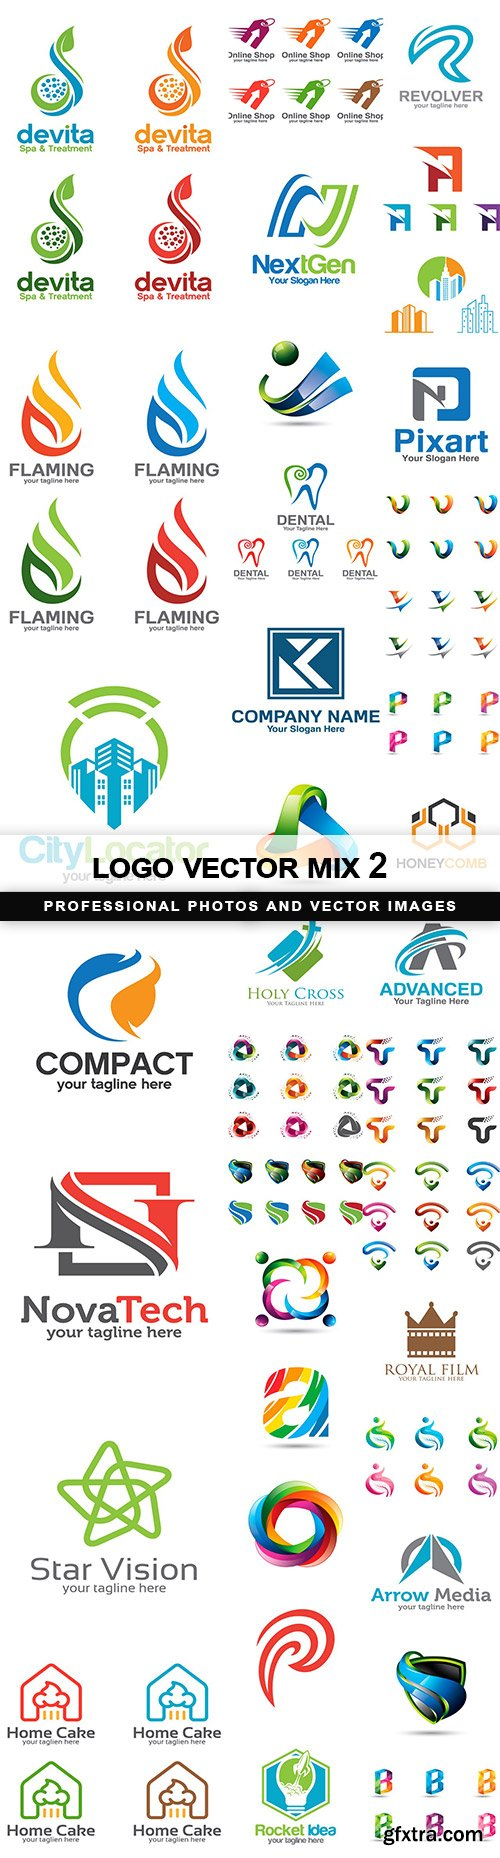 logo vector mix 2